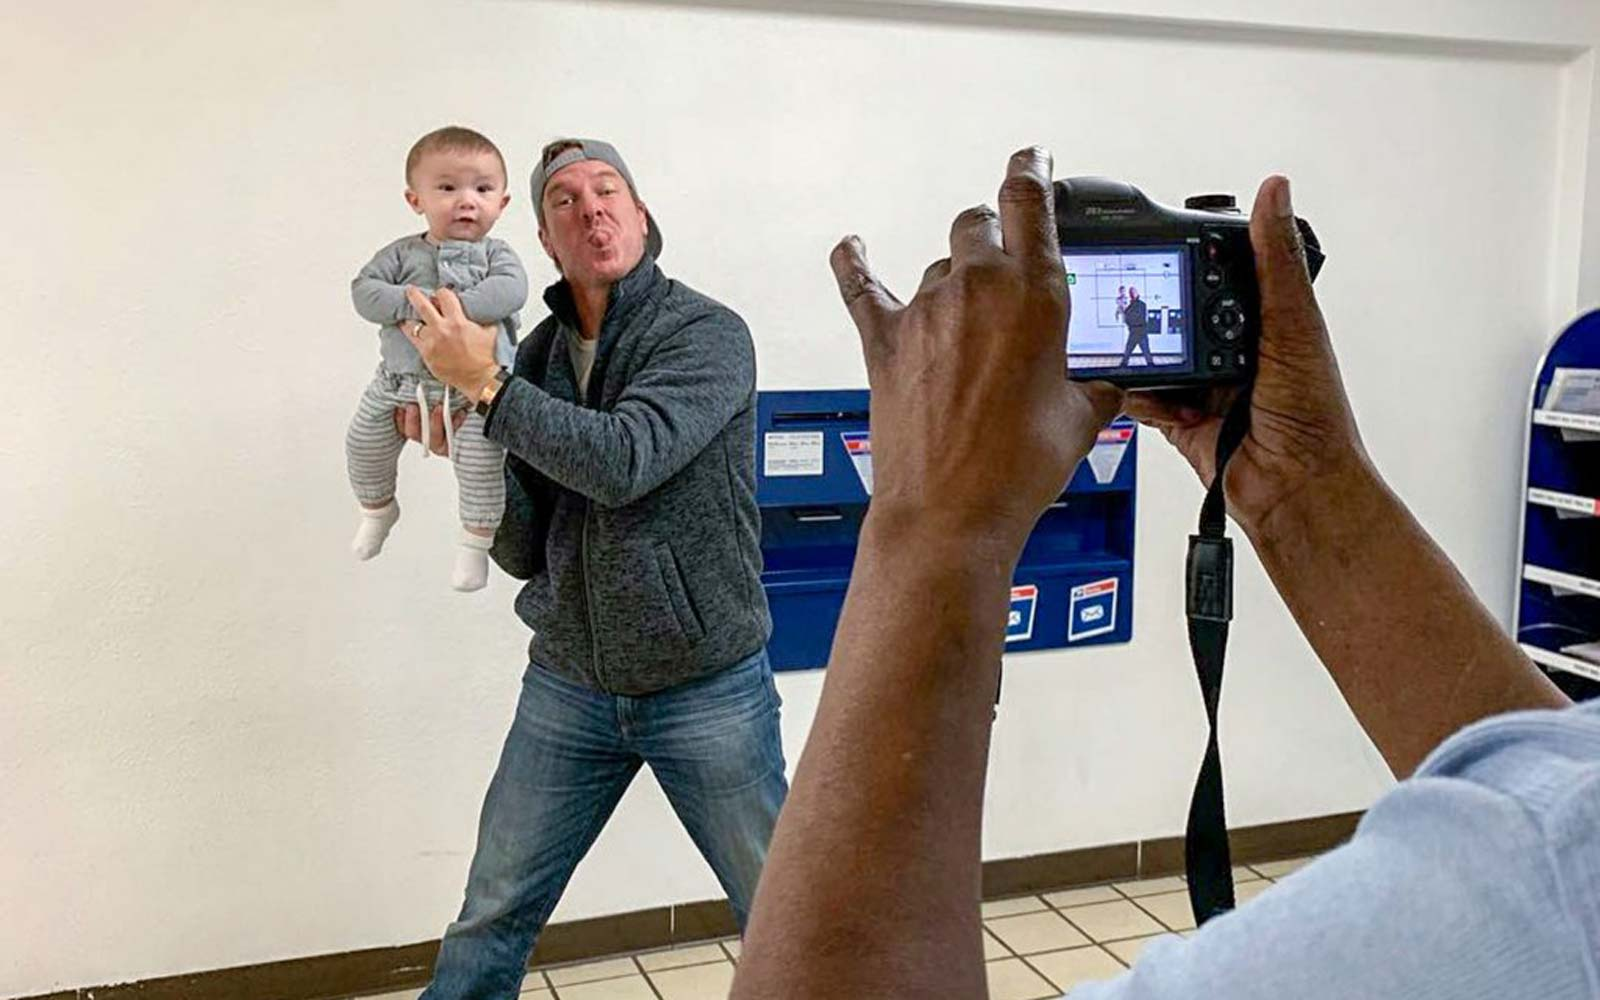 Joanna Gaines Shares Adorable Behind-the-scenes Snaps of Baby Crew Getting His Passport Photos